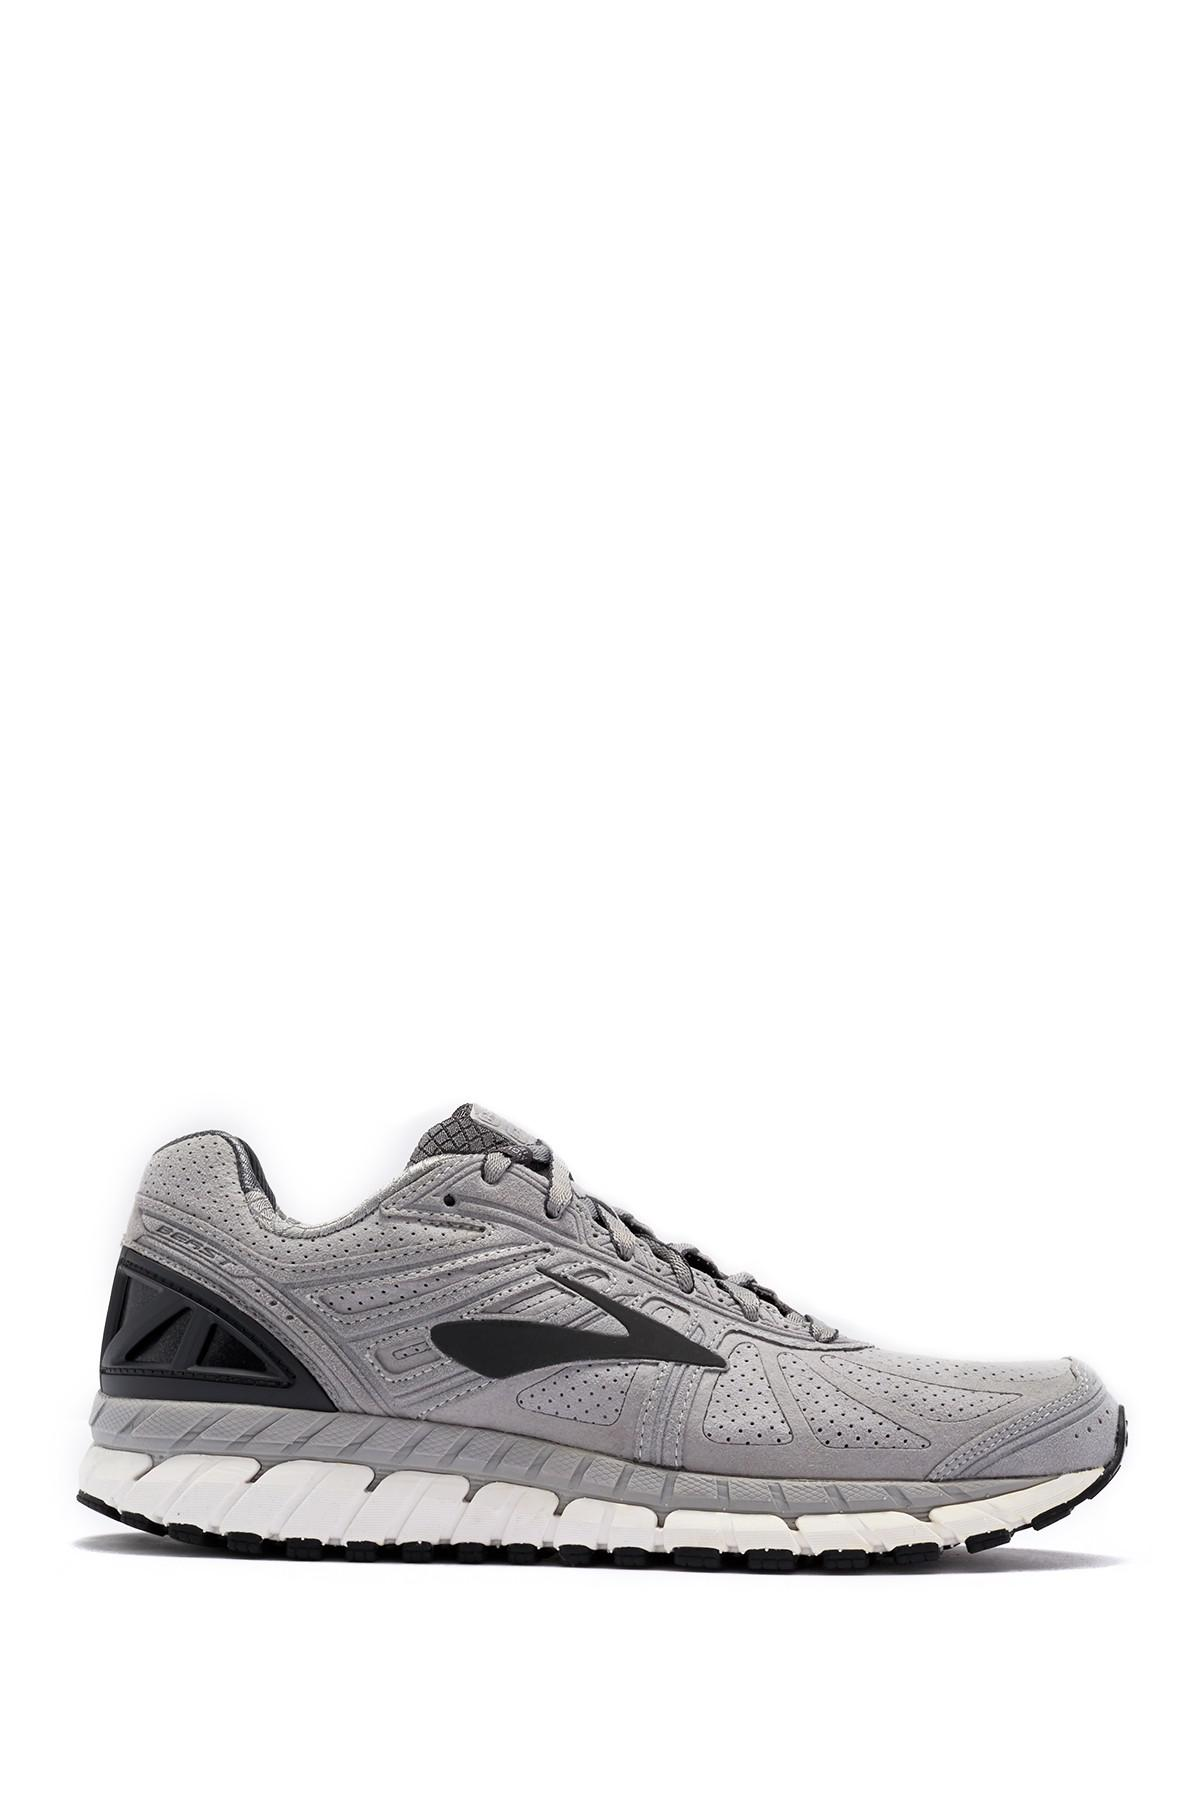 4f9b54e6e0da4 Gallery. Previously sold at  Nordstrom Rack · Men s Running Sneakers ...